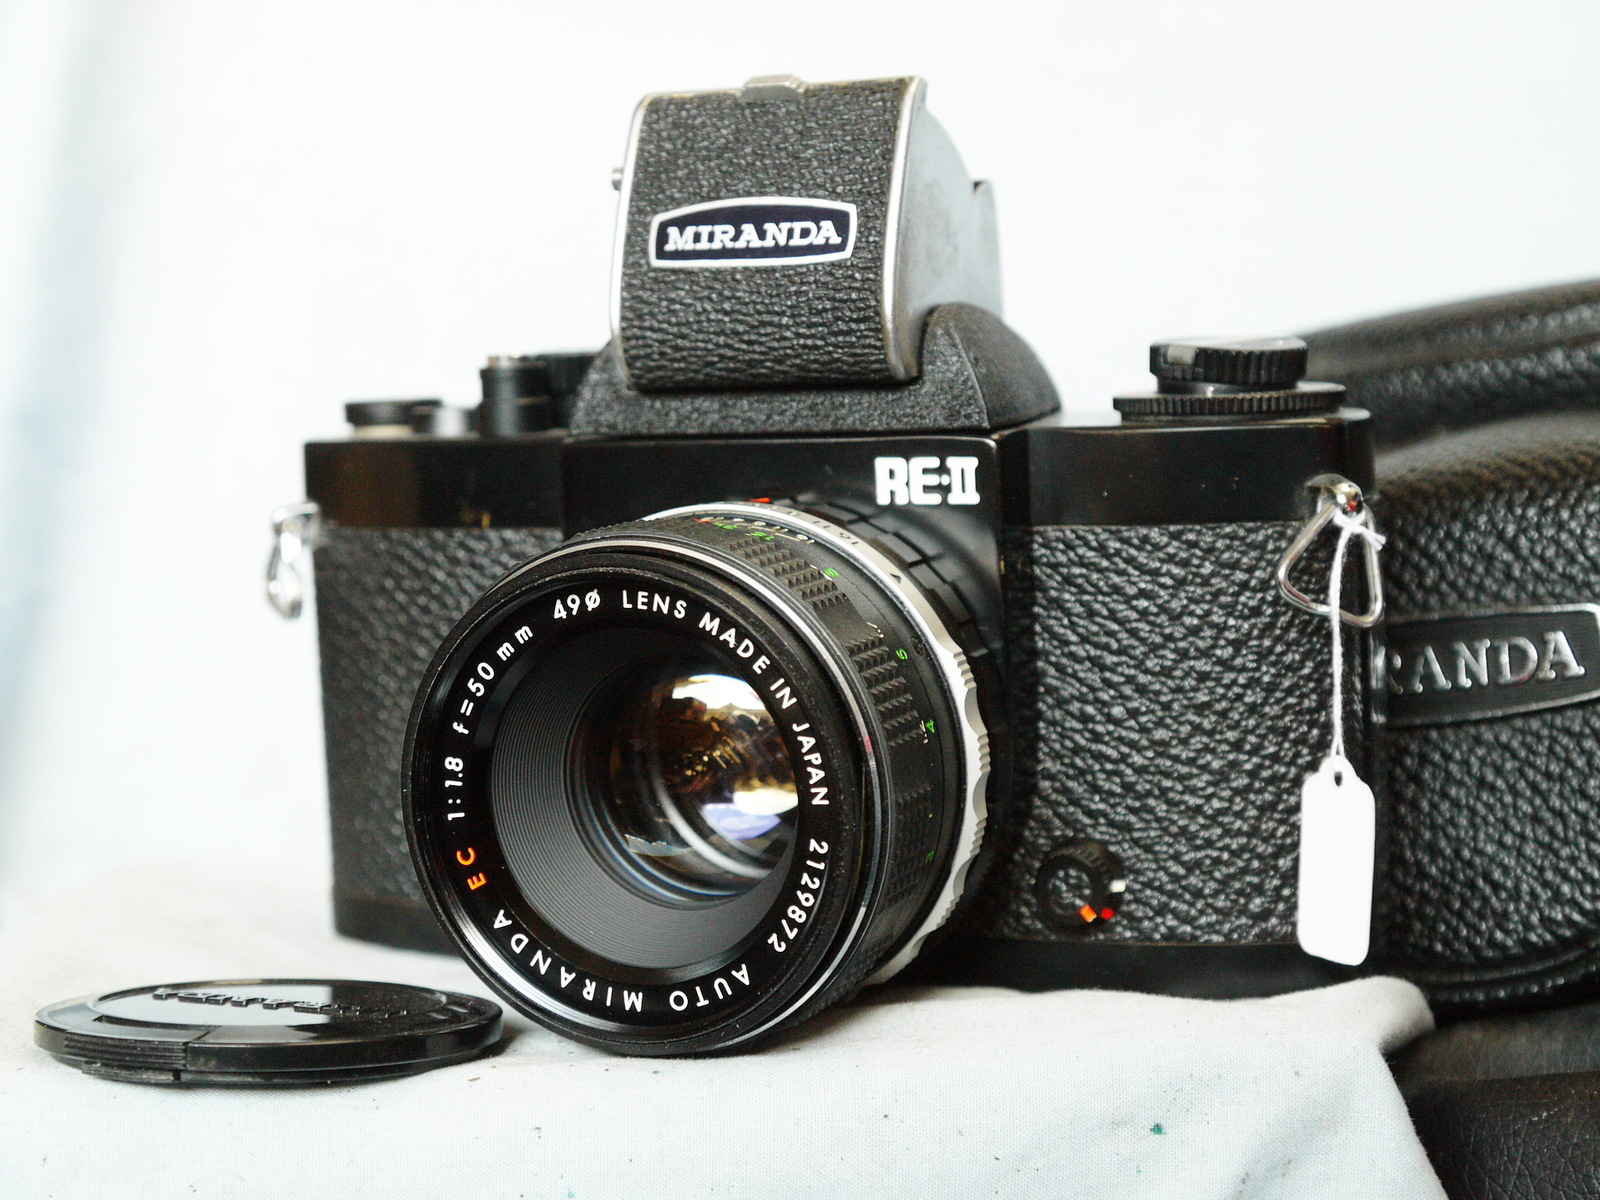 Primary image for Miranda RE-II BLACK 35mm SLR Camera c/w 50mm 1.8 Lens Cased+WLF- Collectors Item